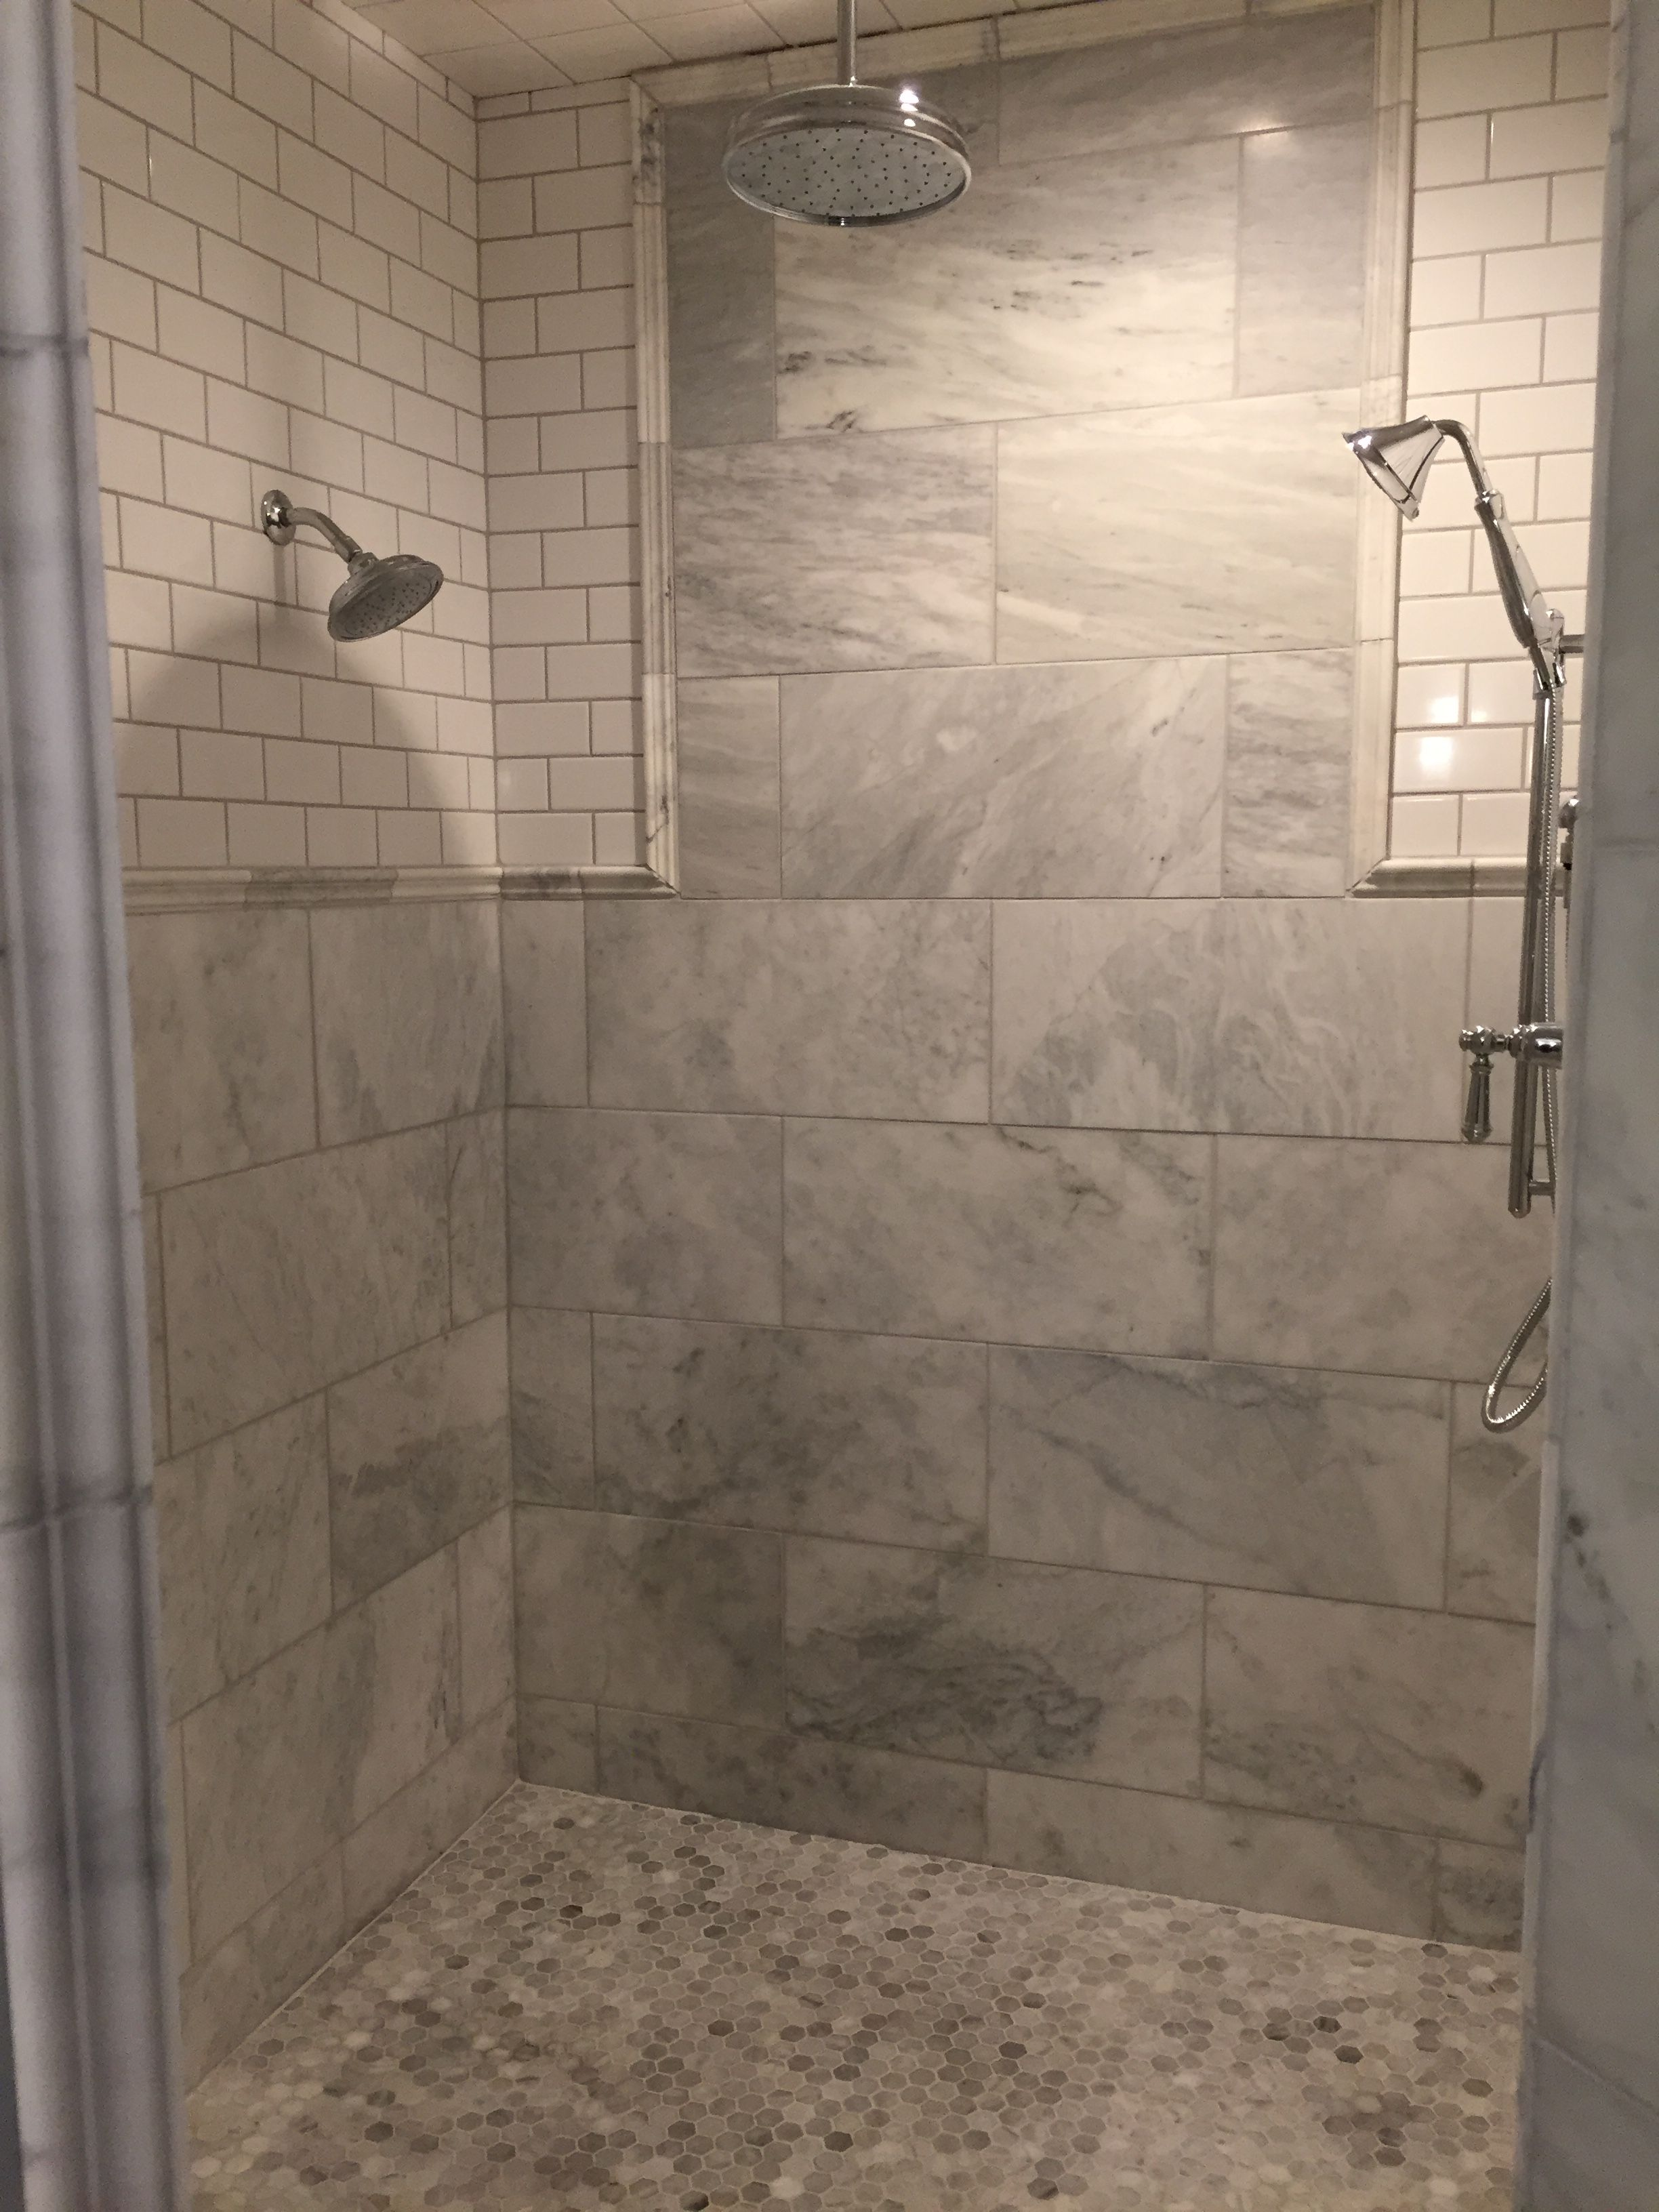 Master Bathroom Walk In Shower 12x18 Marble Tile Walls With 3x6 Subway Tile 1 Hexagonal Marble Floor Tile Kohl Master Bathroom Marble Tile Floor Bathroom